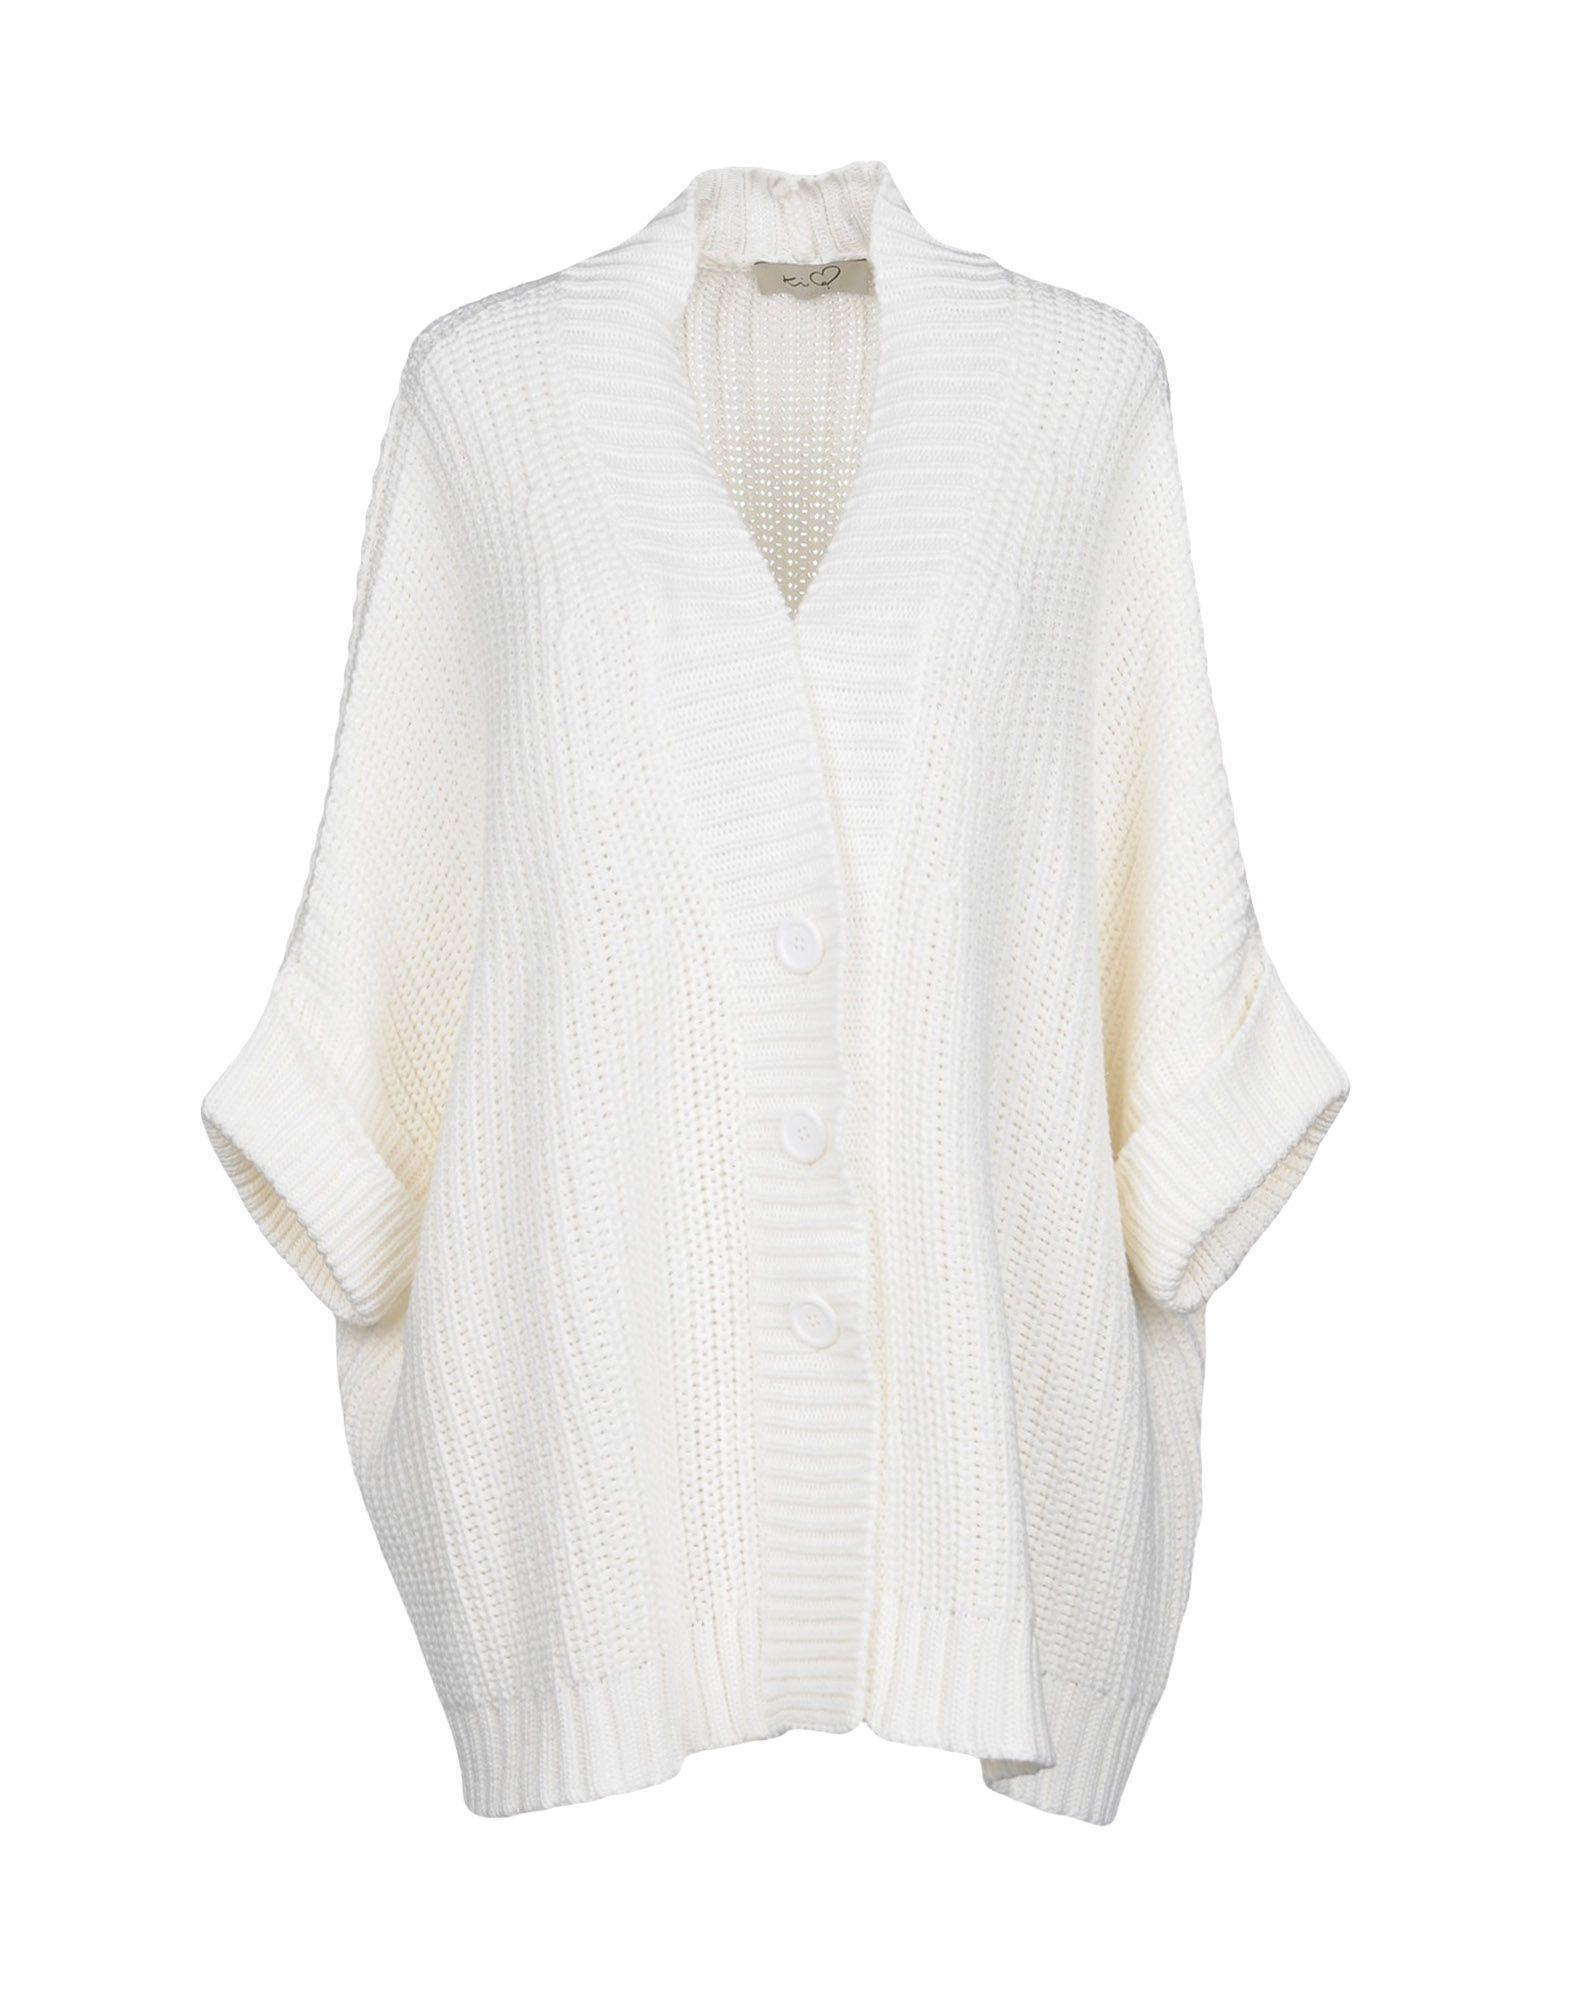 KNITWEAR - Cardigans Ki6? Who are you? Discount Factory Outlet Sale Wholesale Price sris04H